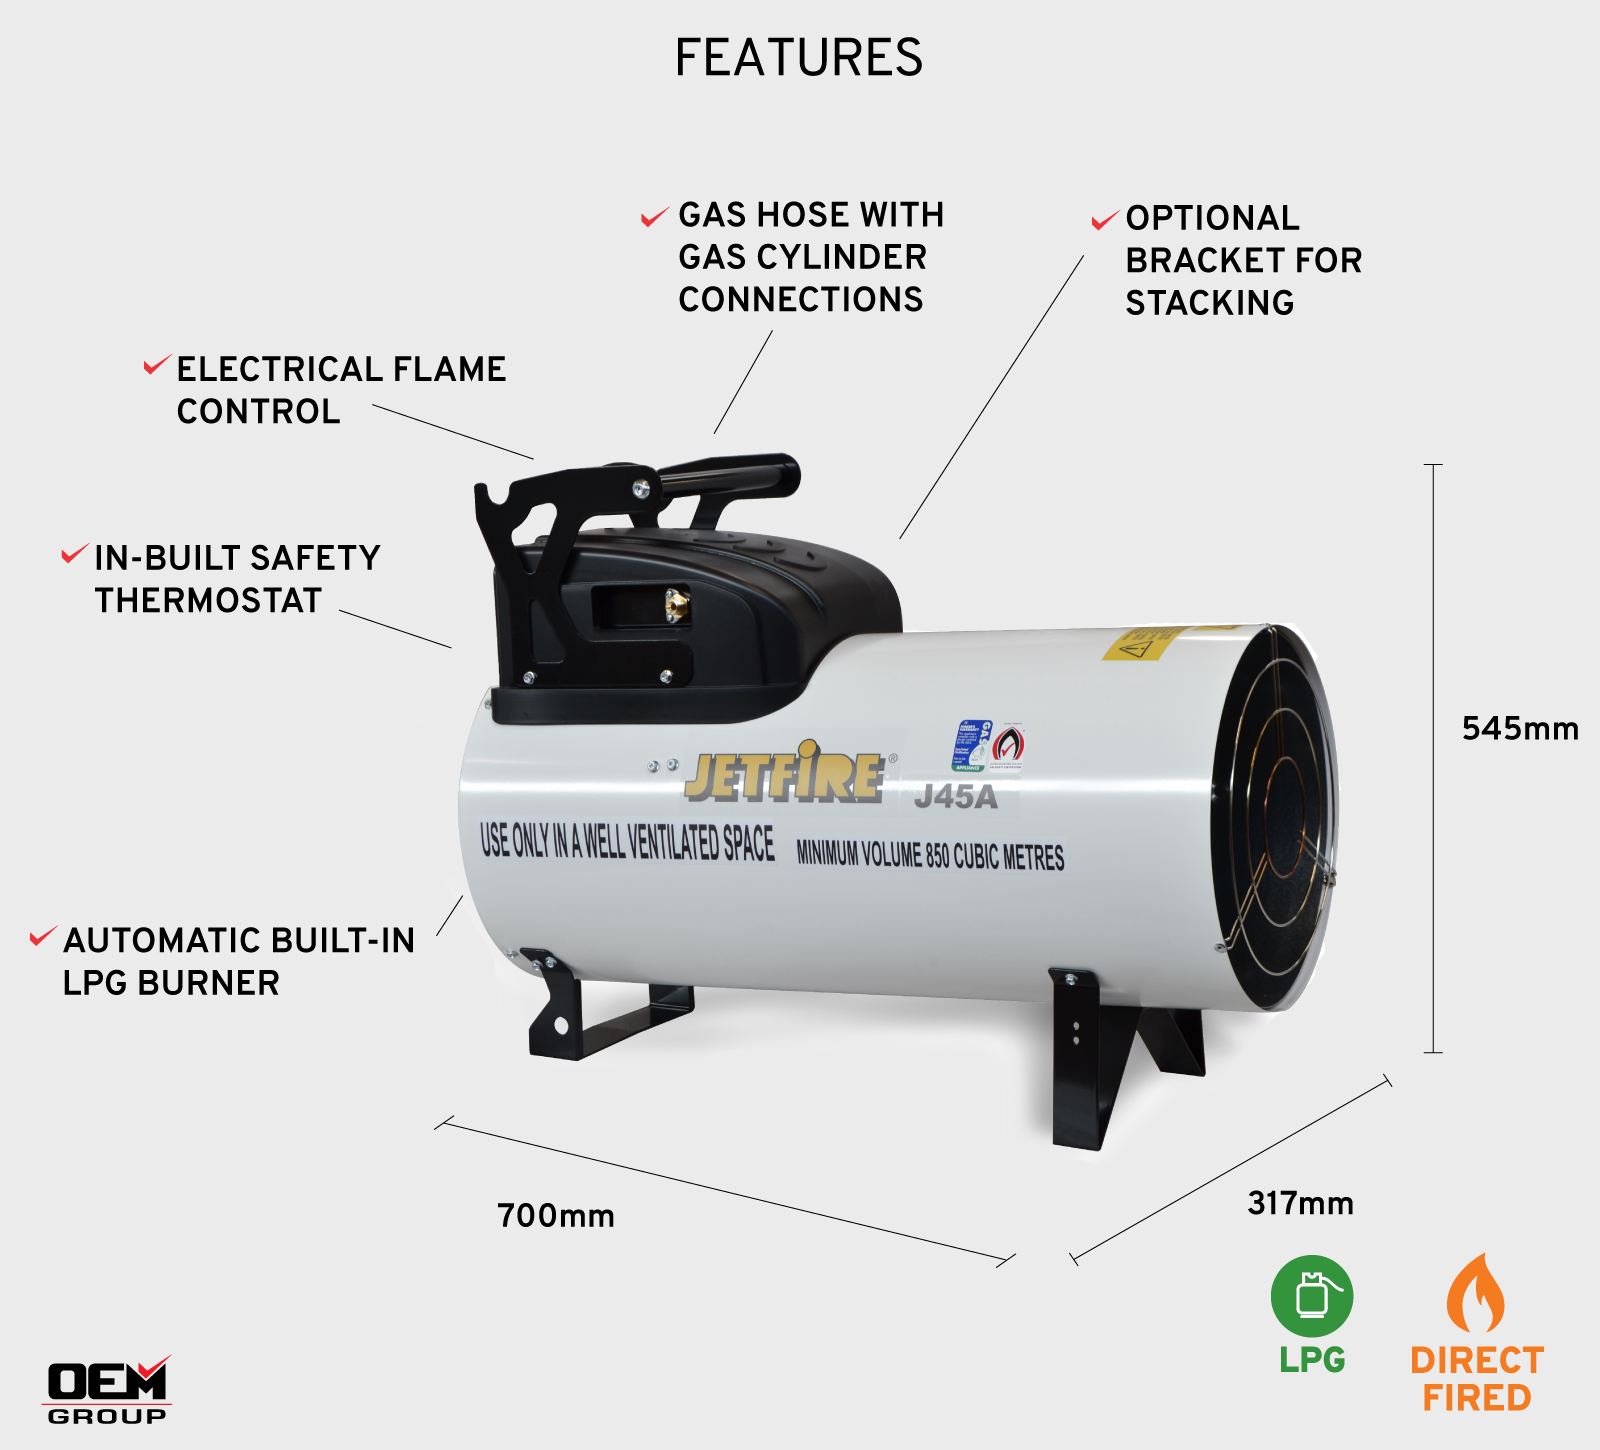 Jetfire J45A Heater Feature Annotated